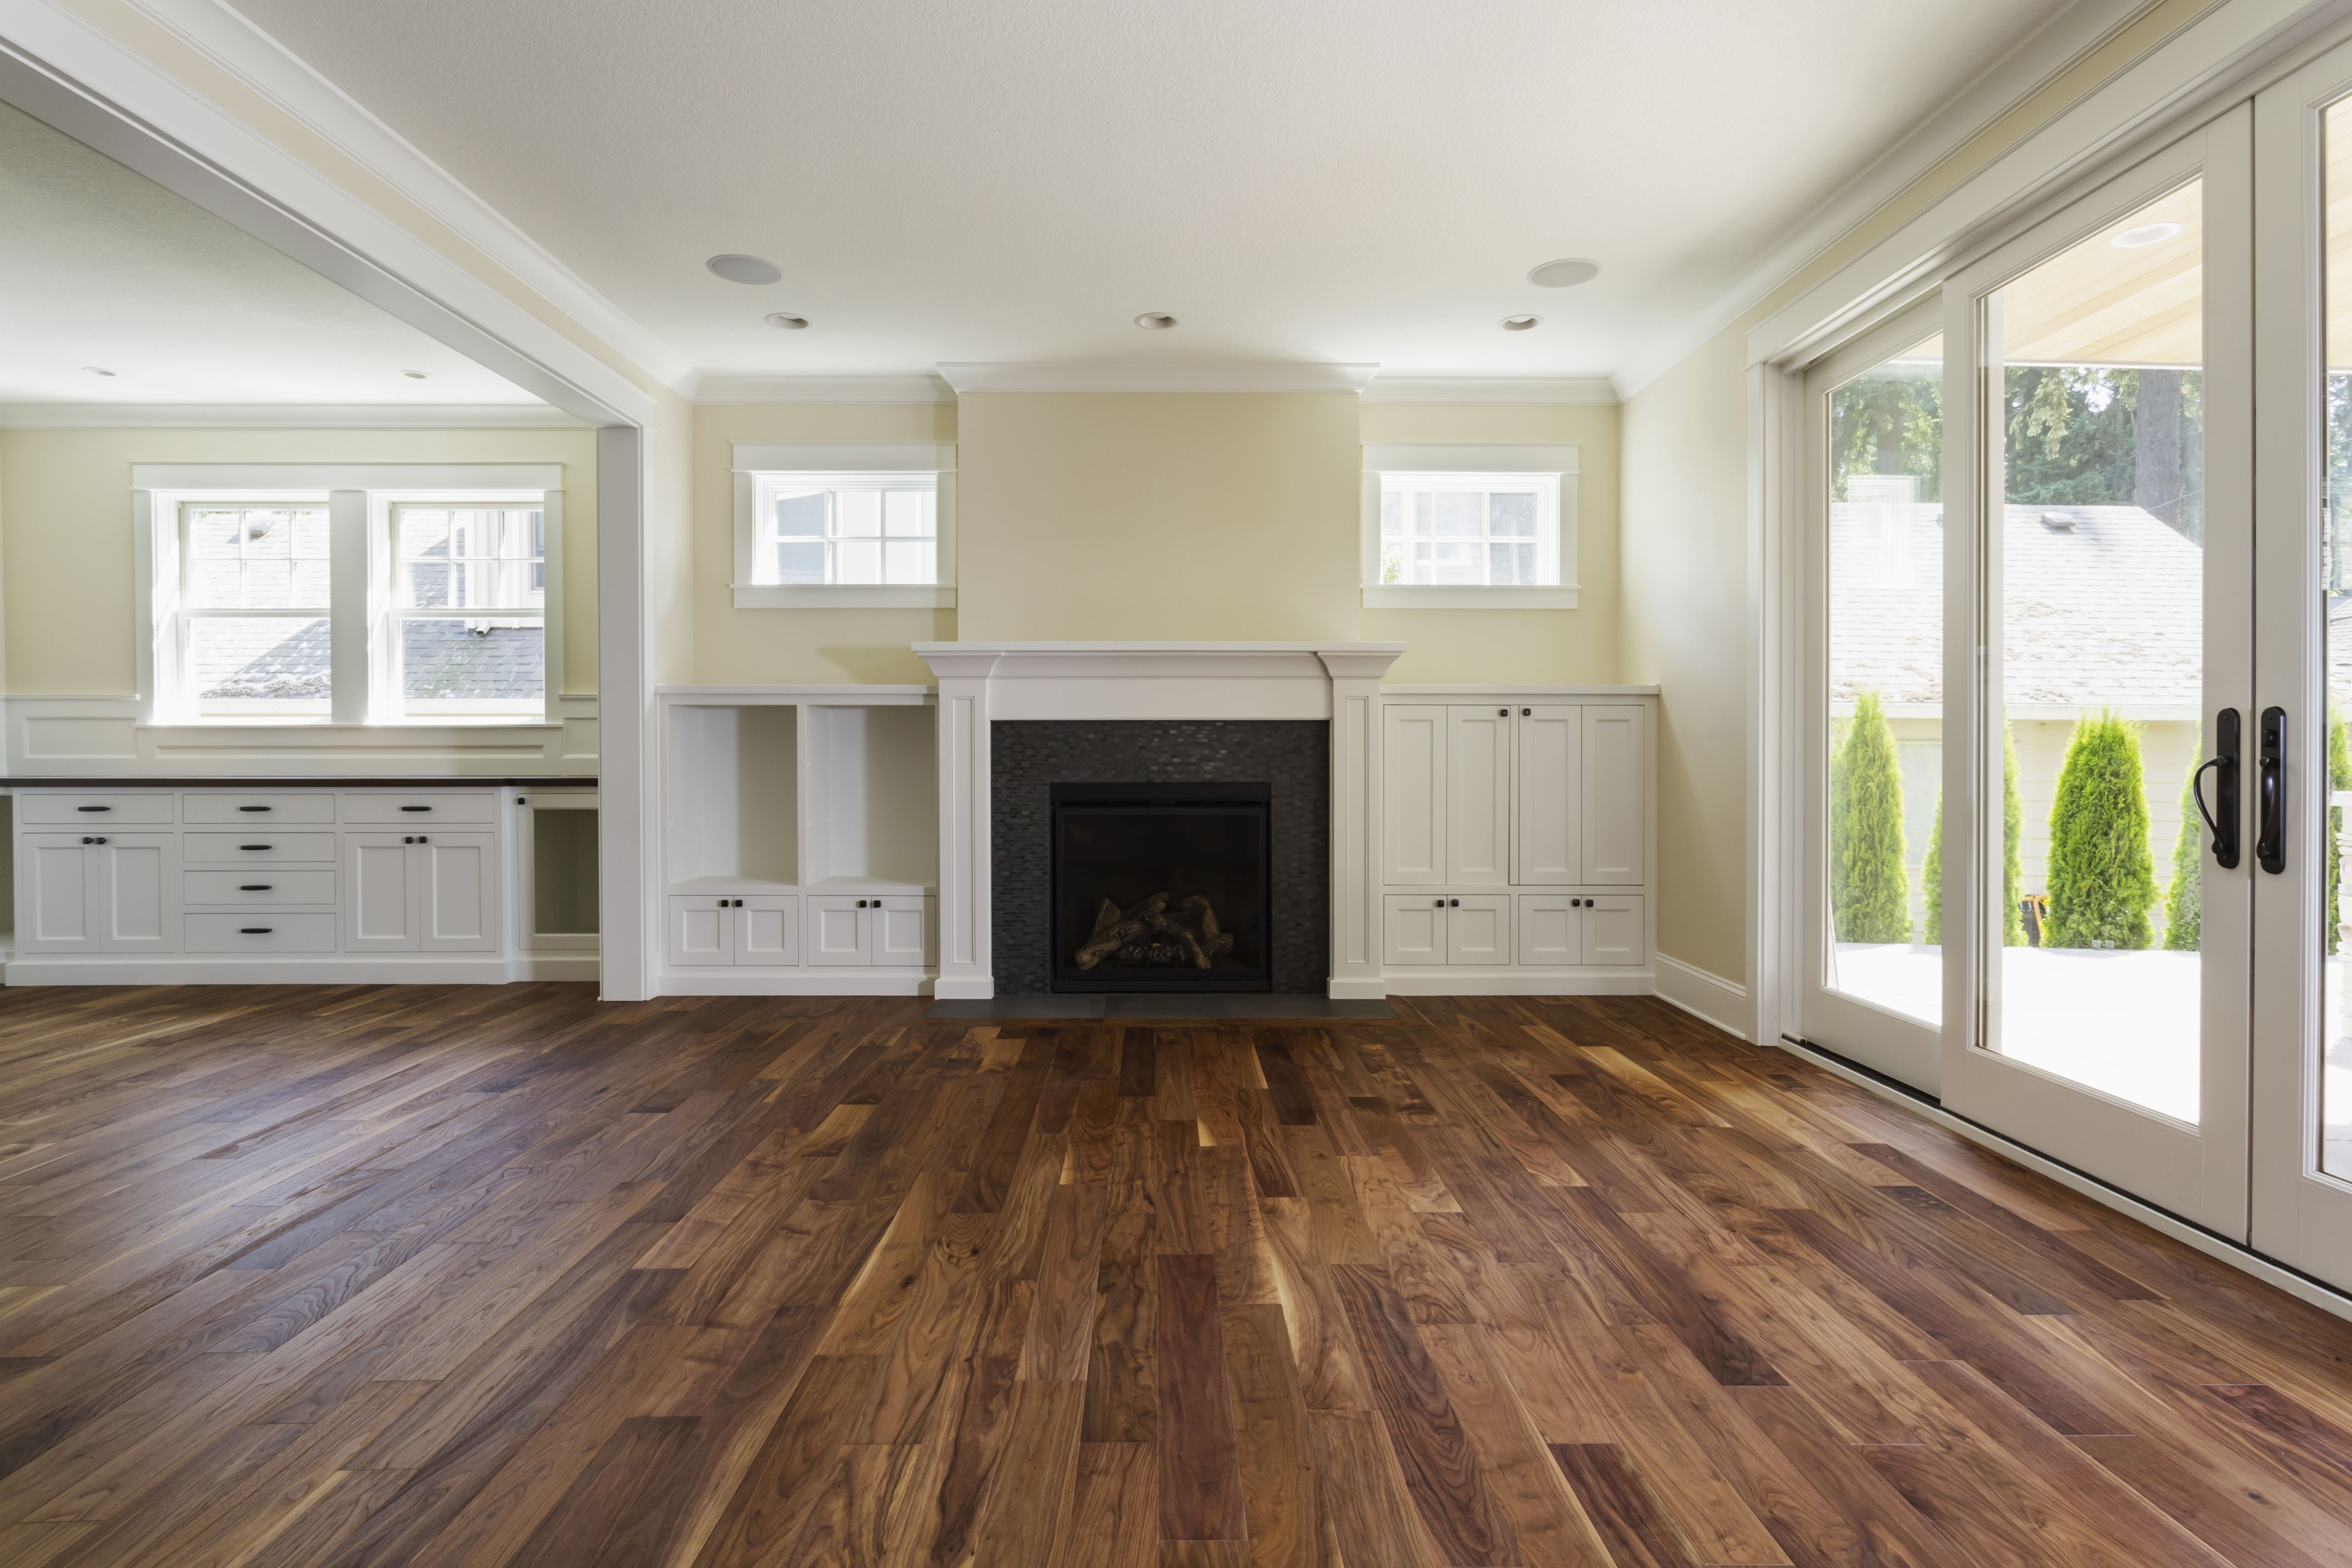 can you use different color hardwood floors of the pros and cons of prefinished hardwood flooring inside fireplace and built in shelves in living room 482143011 57bef8e33df78cc16e035397